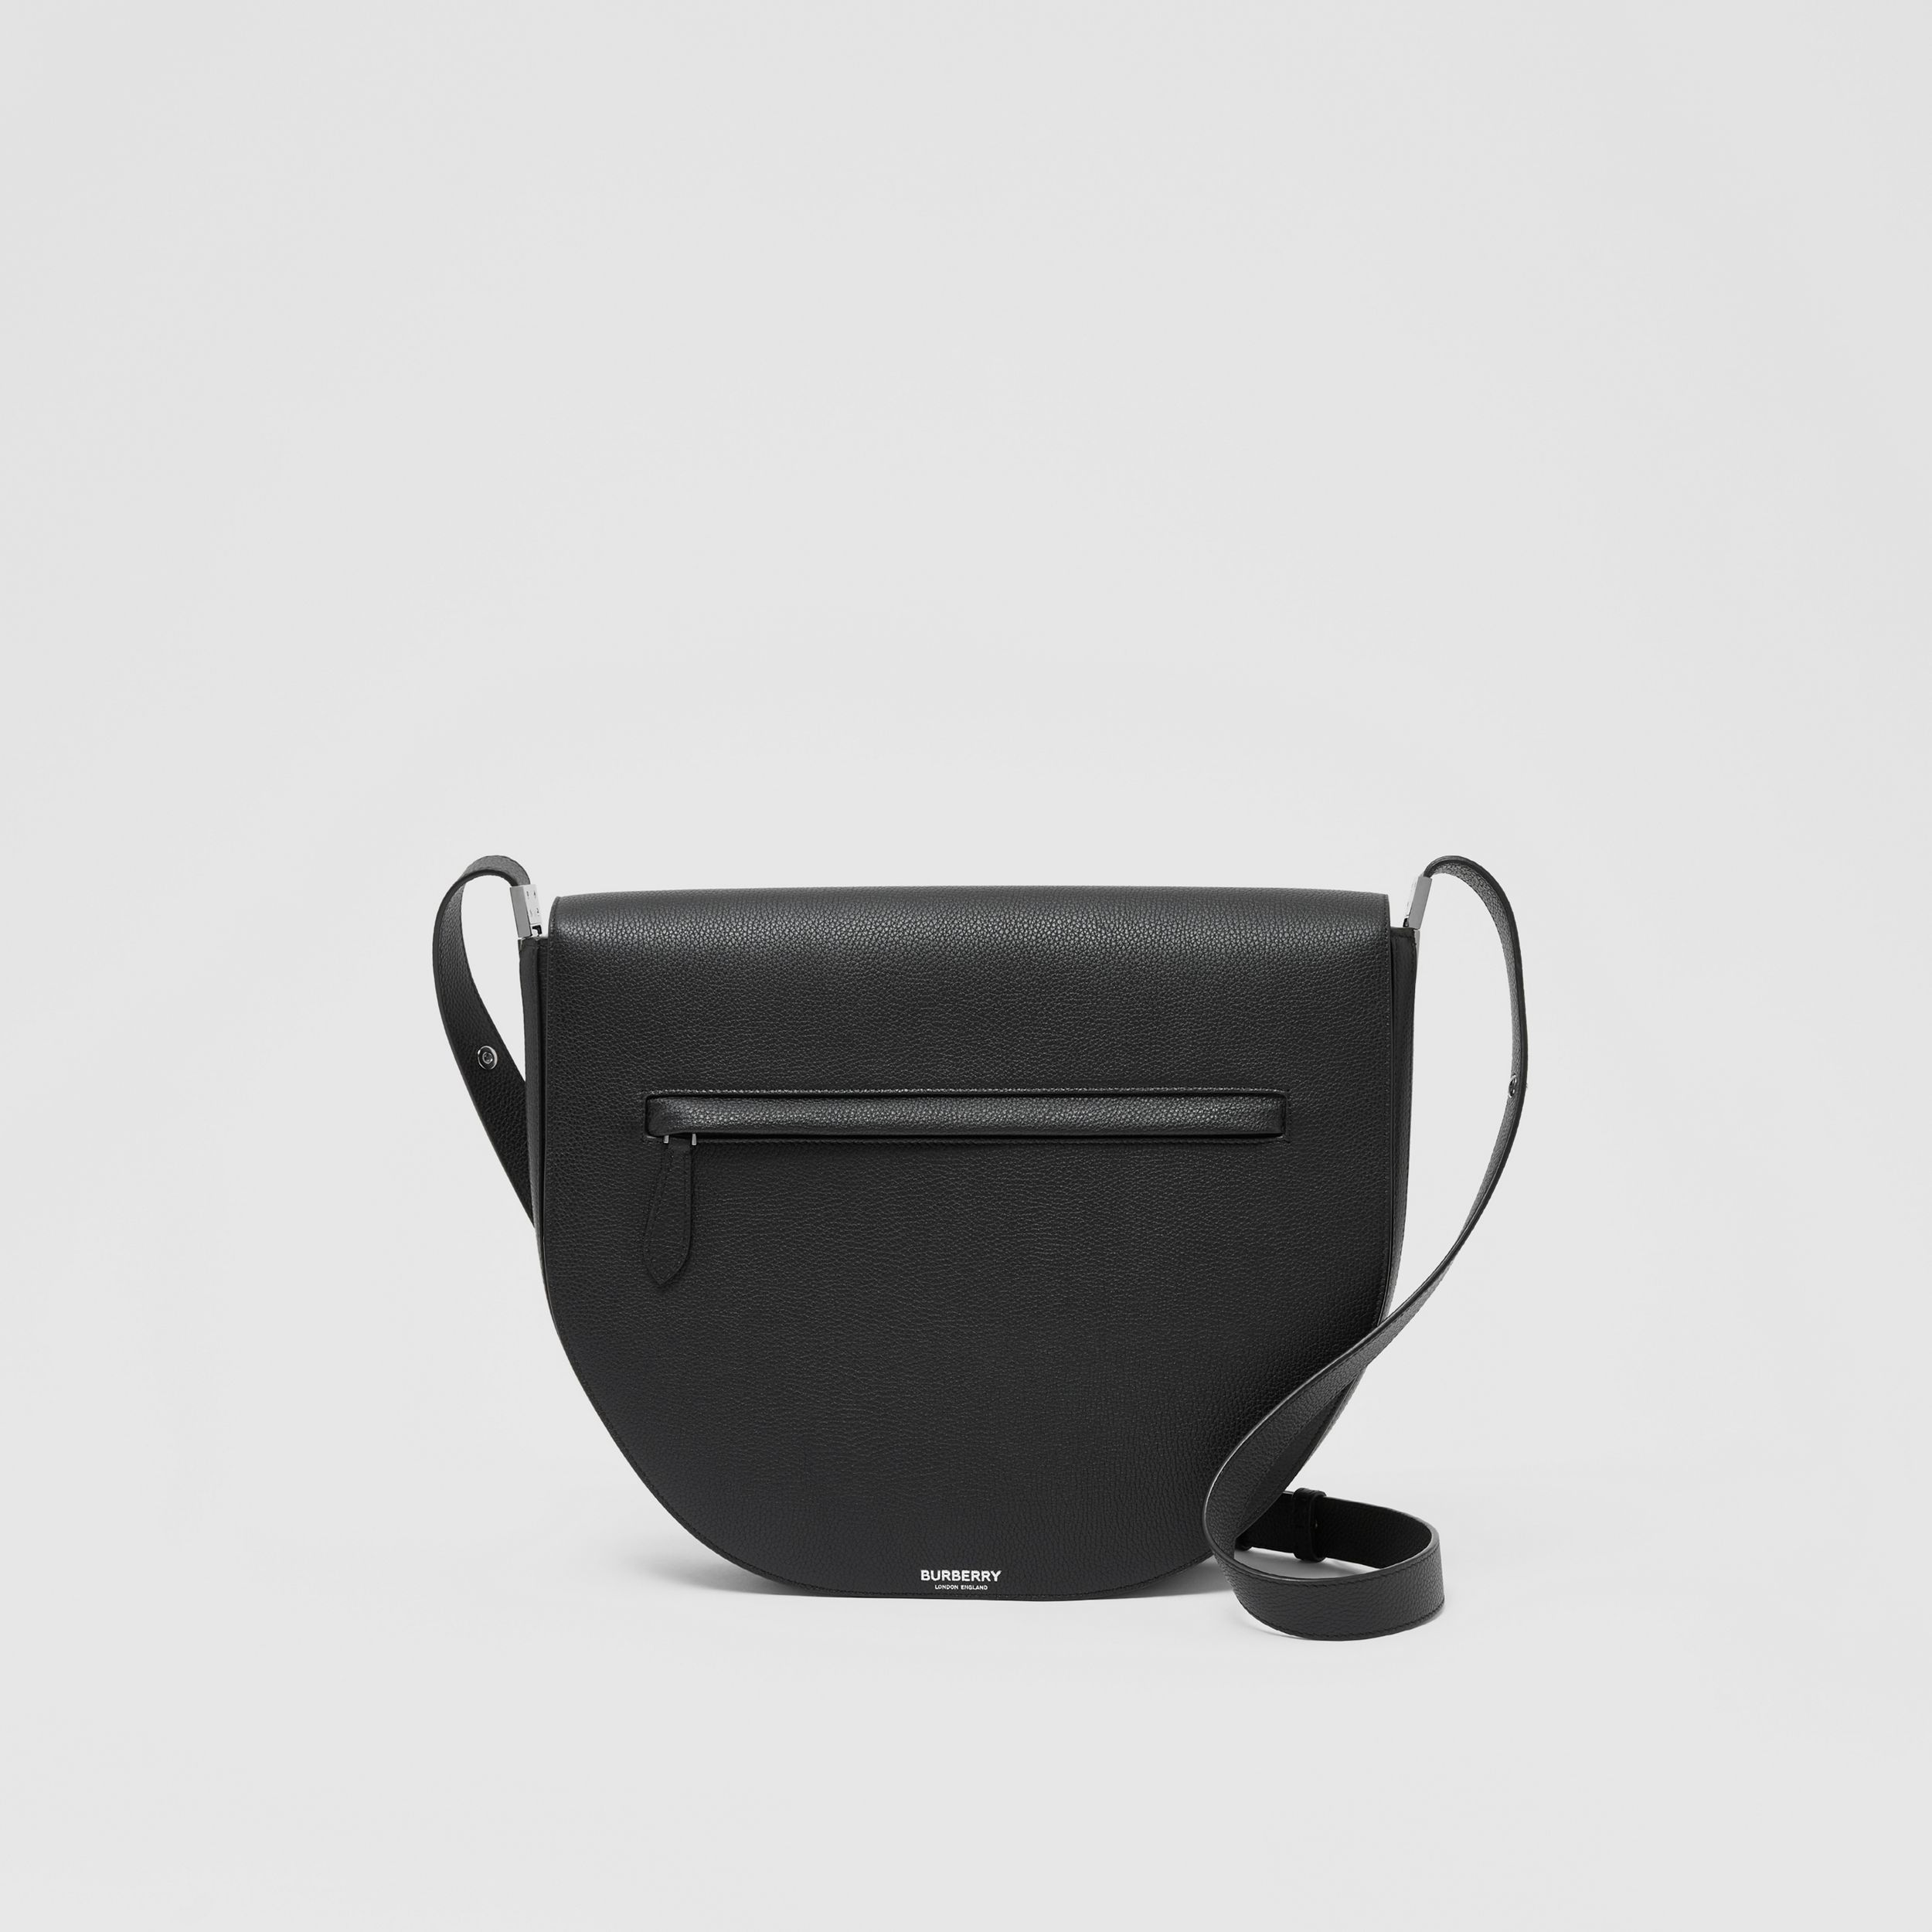 Leather Olympia Crossbody Bag in Black | Burberry Singapore - 1